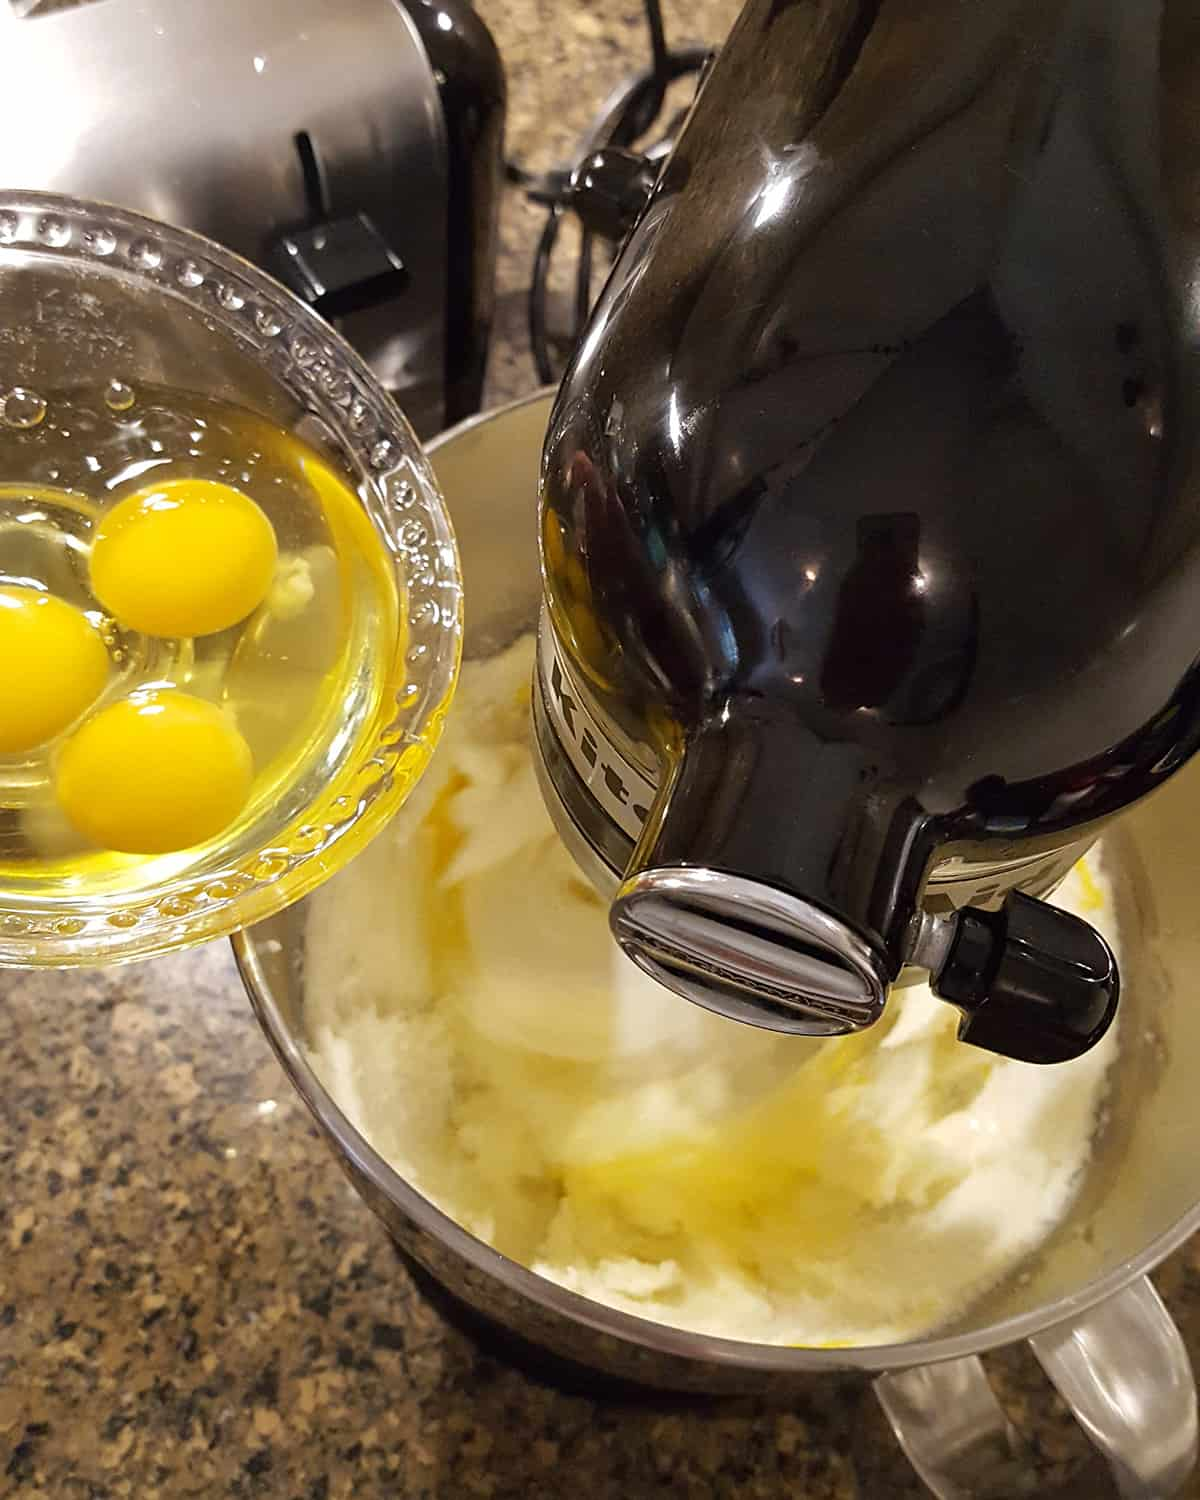 Eggs being added from a small bowl into the butter and sugar mixture in a stand mixer.